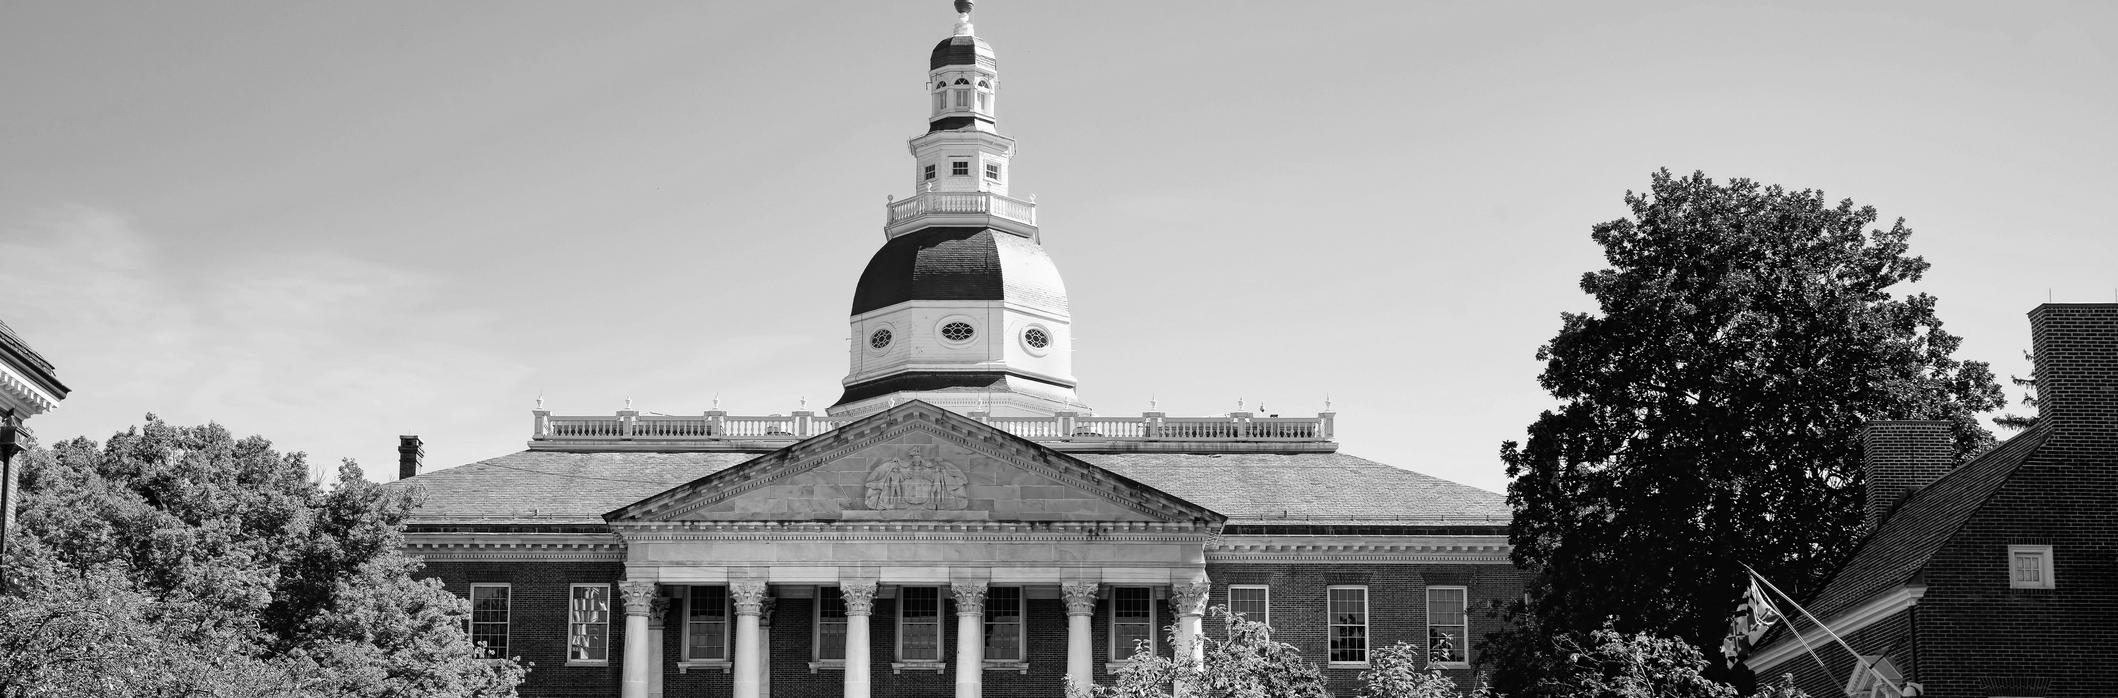 Image of Maryland capitol building